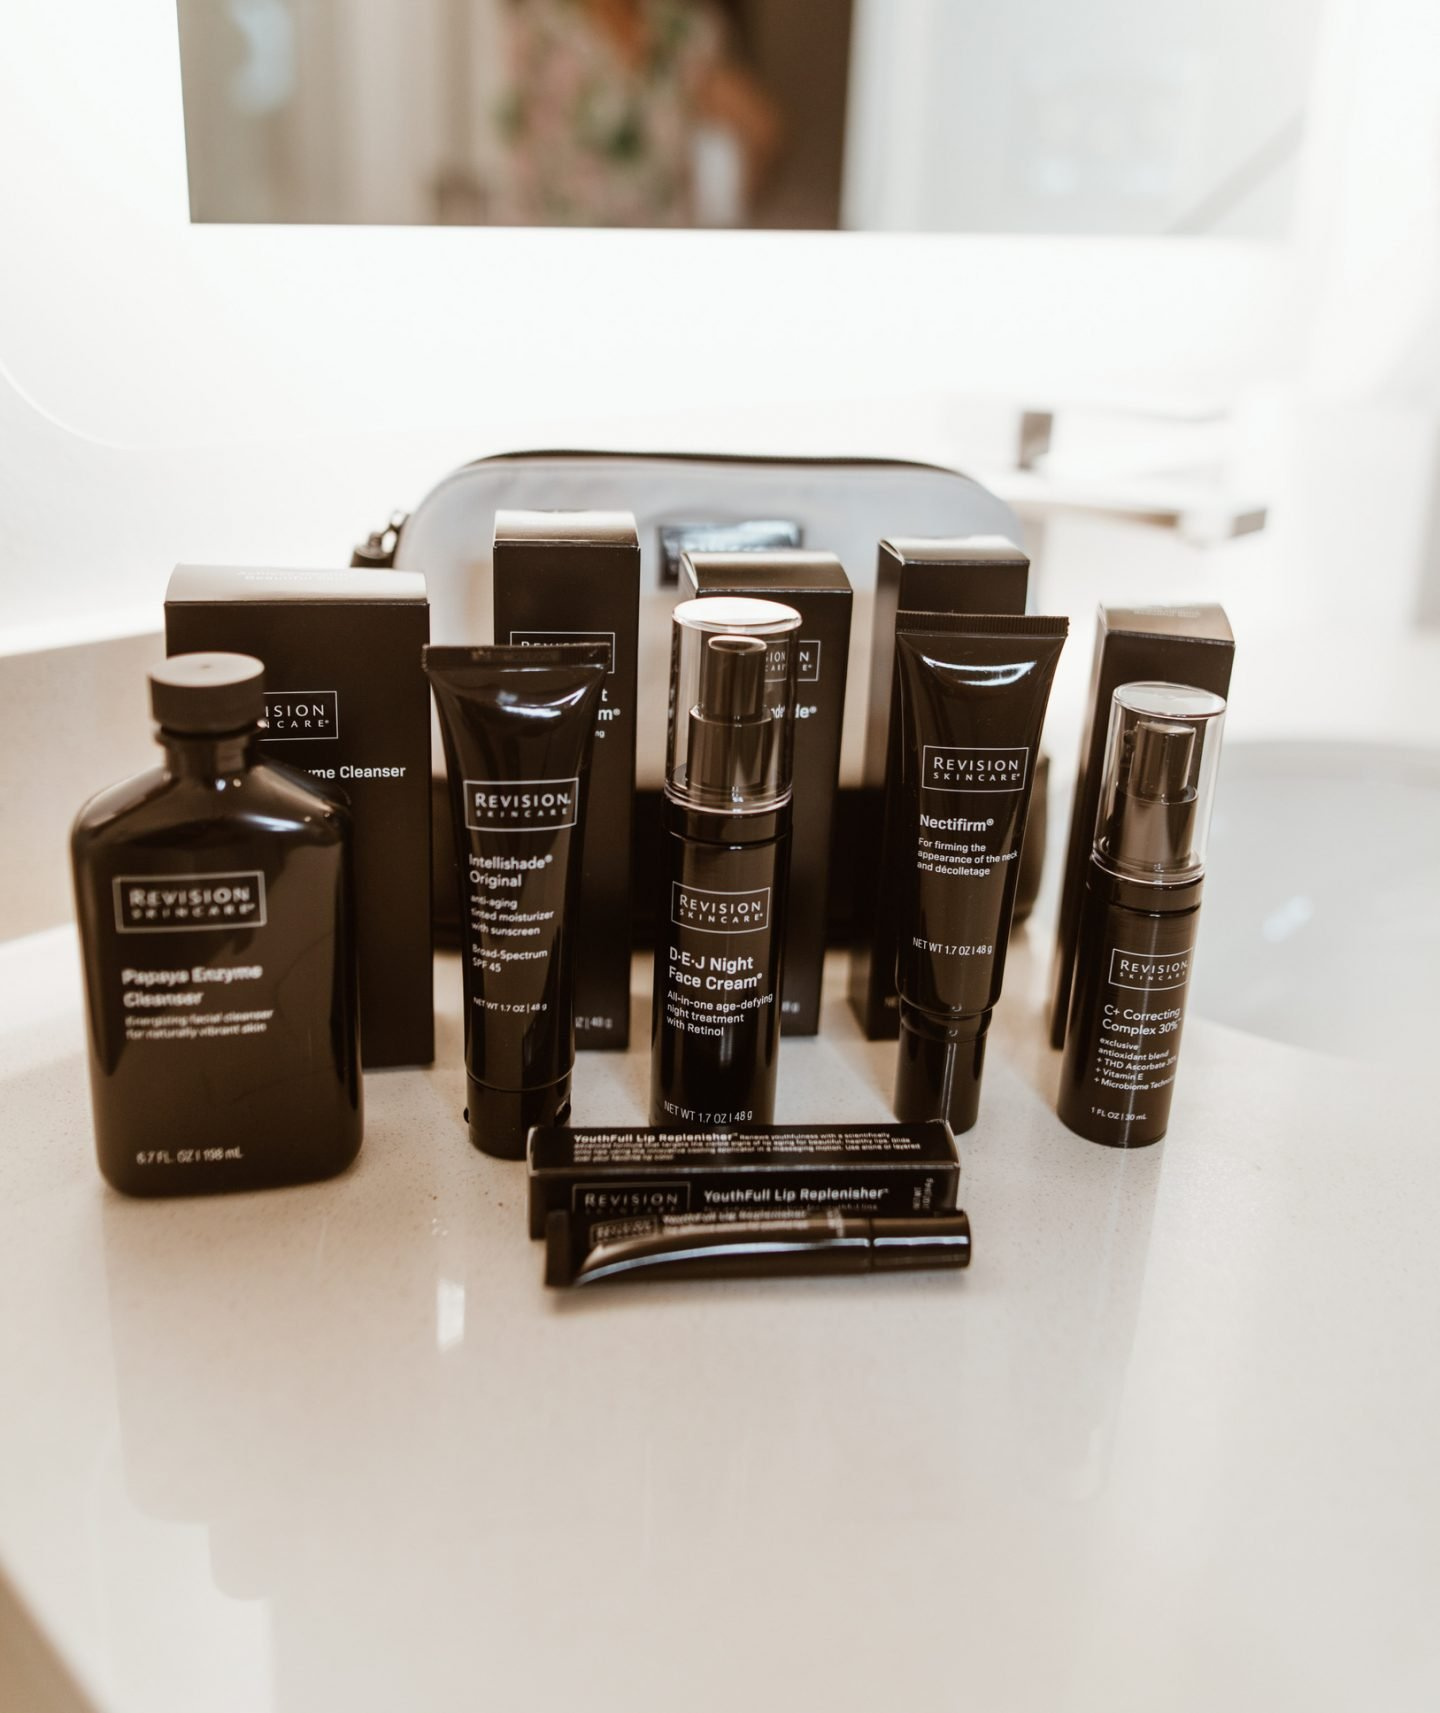 Revision Skincare New to me skincare and haircare